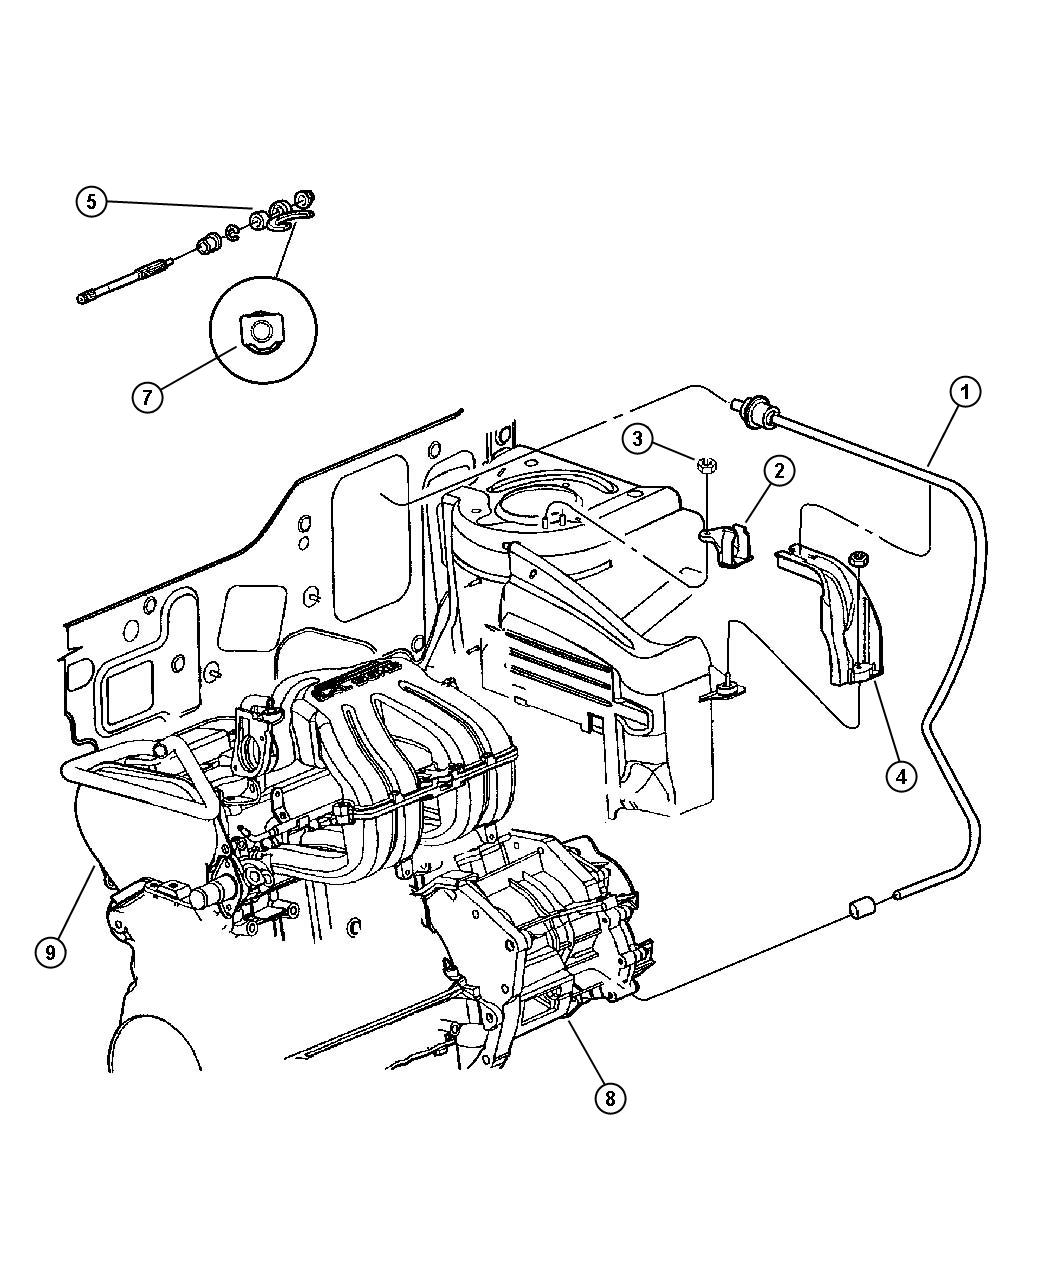 Wiring Diagram 76 Jeep Cj7. Jeep. Auto Wiring Diagram